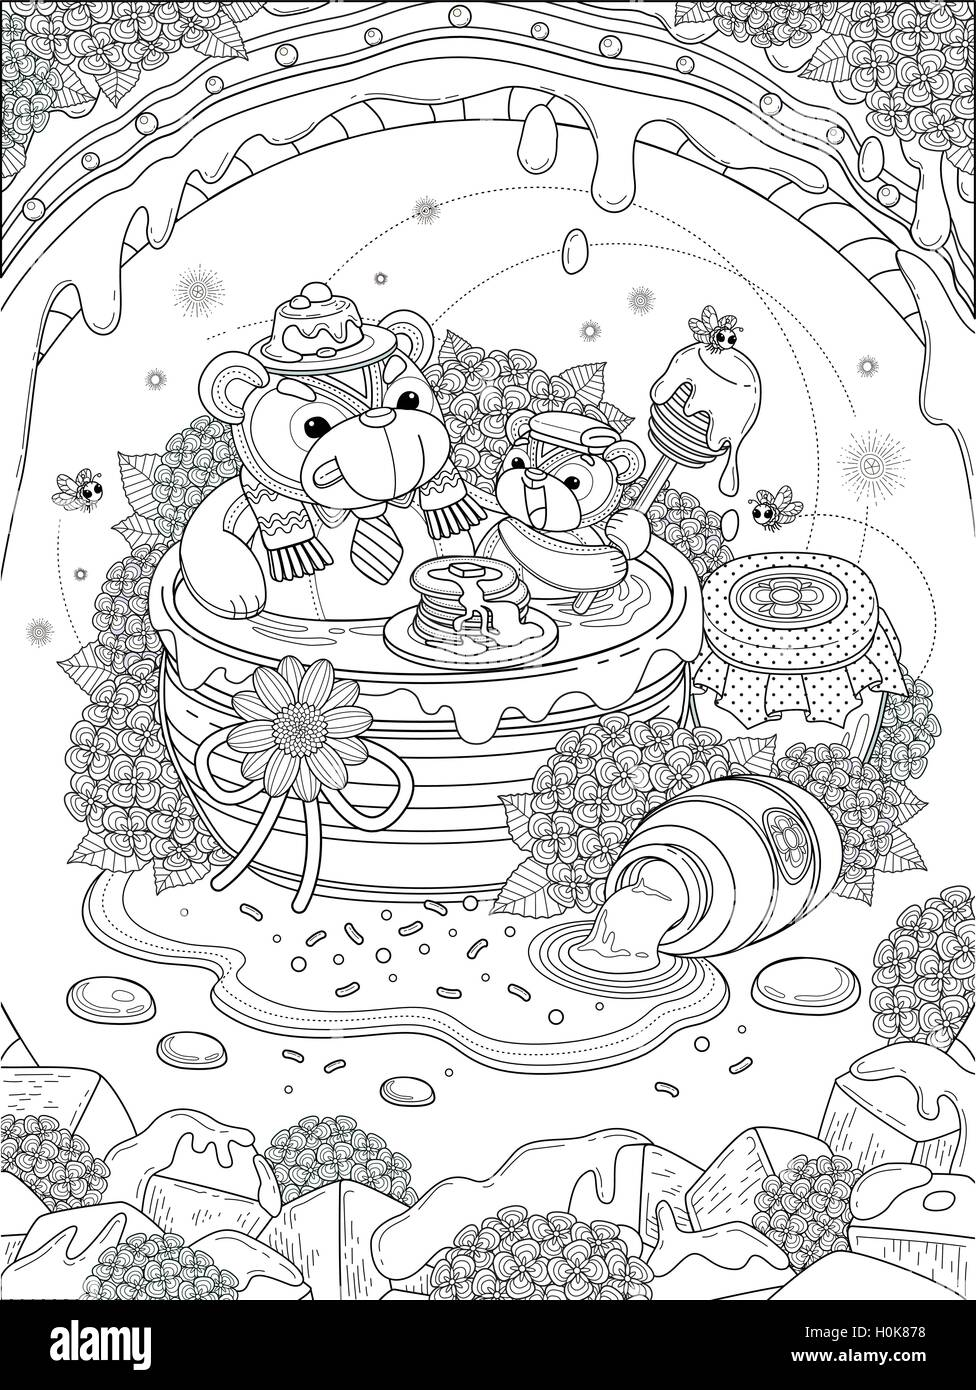 Lovely Adult Coloring Page Foodie Bear Family Enjoy Their Honey Meal Anti Stress Pattern For